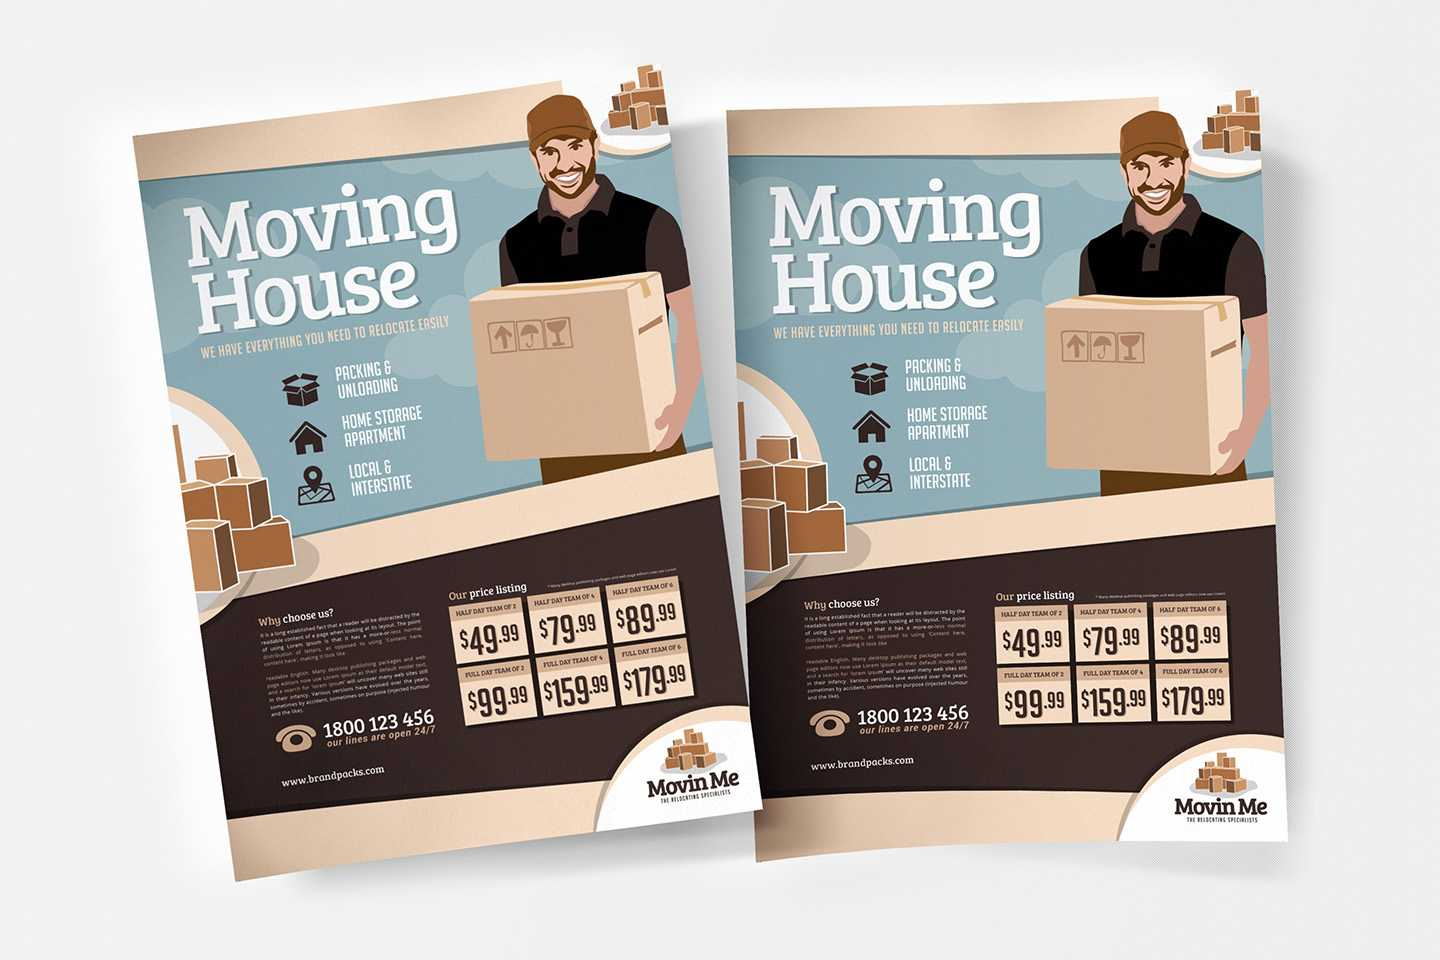 Free Moving House Poster Template For Photoshop & Illustrator Regarding Free Moving House Cards Templates